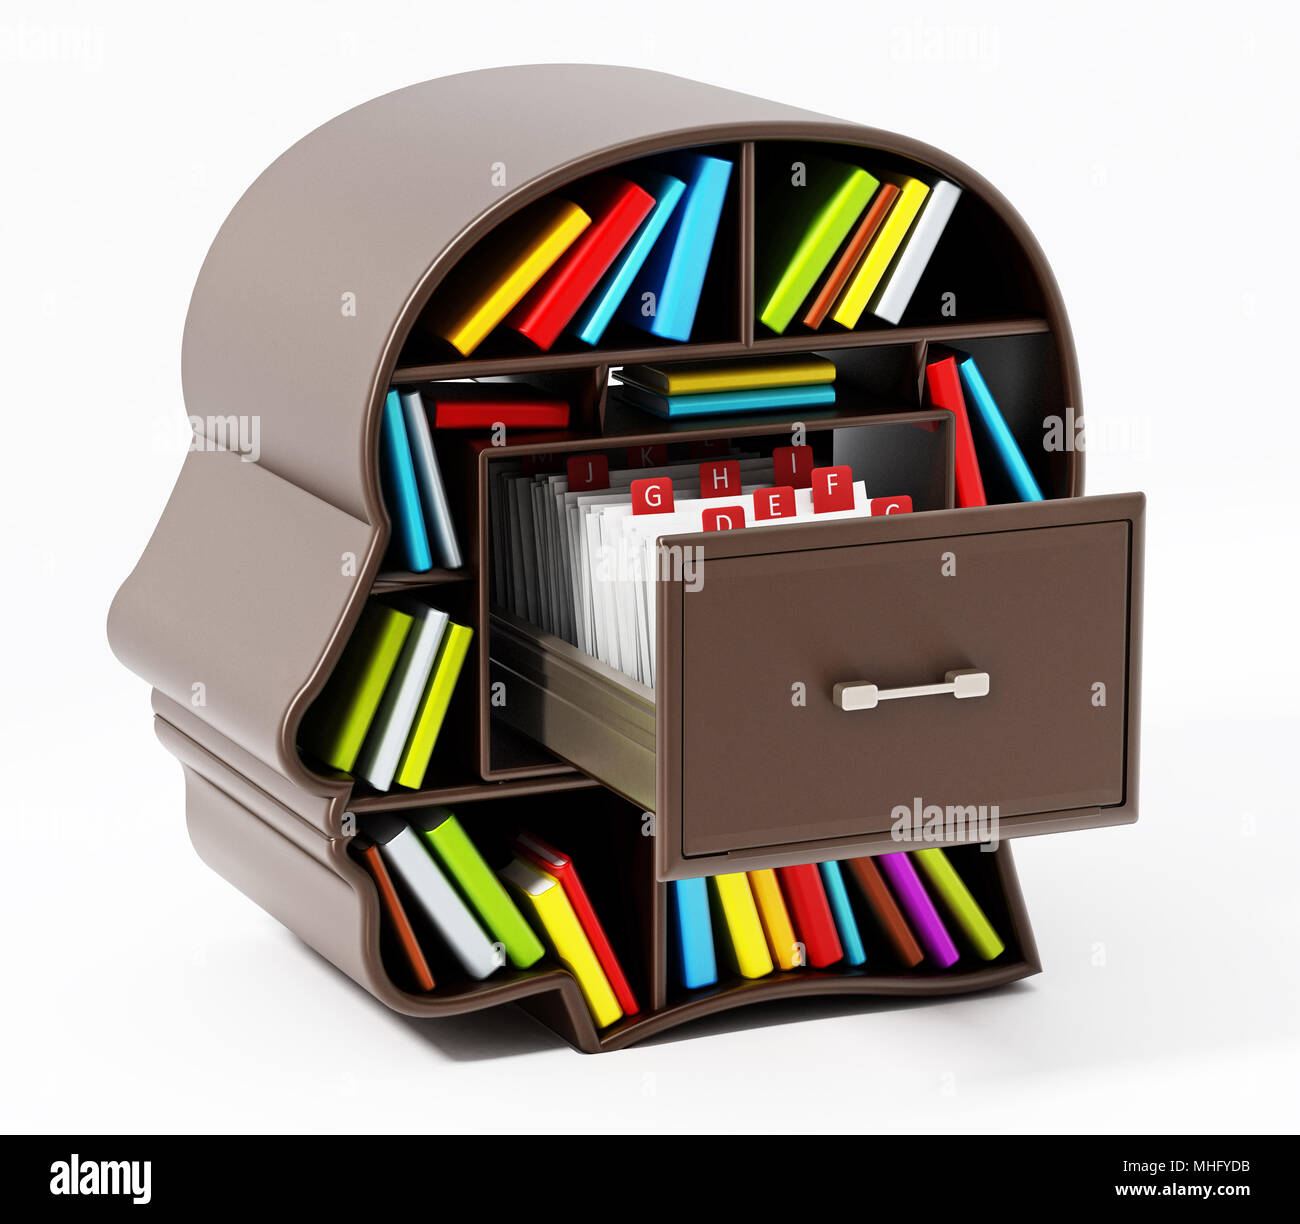 Index card catalogue inside head library drawer. 3D illustration. - Stock Image